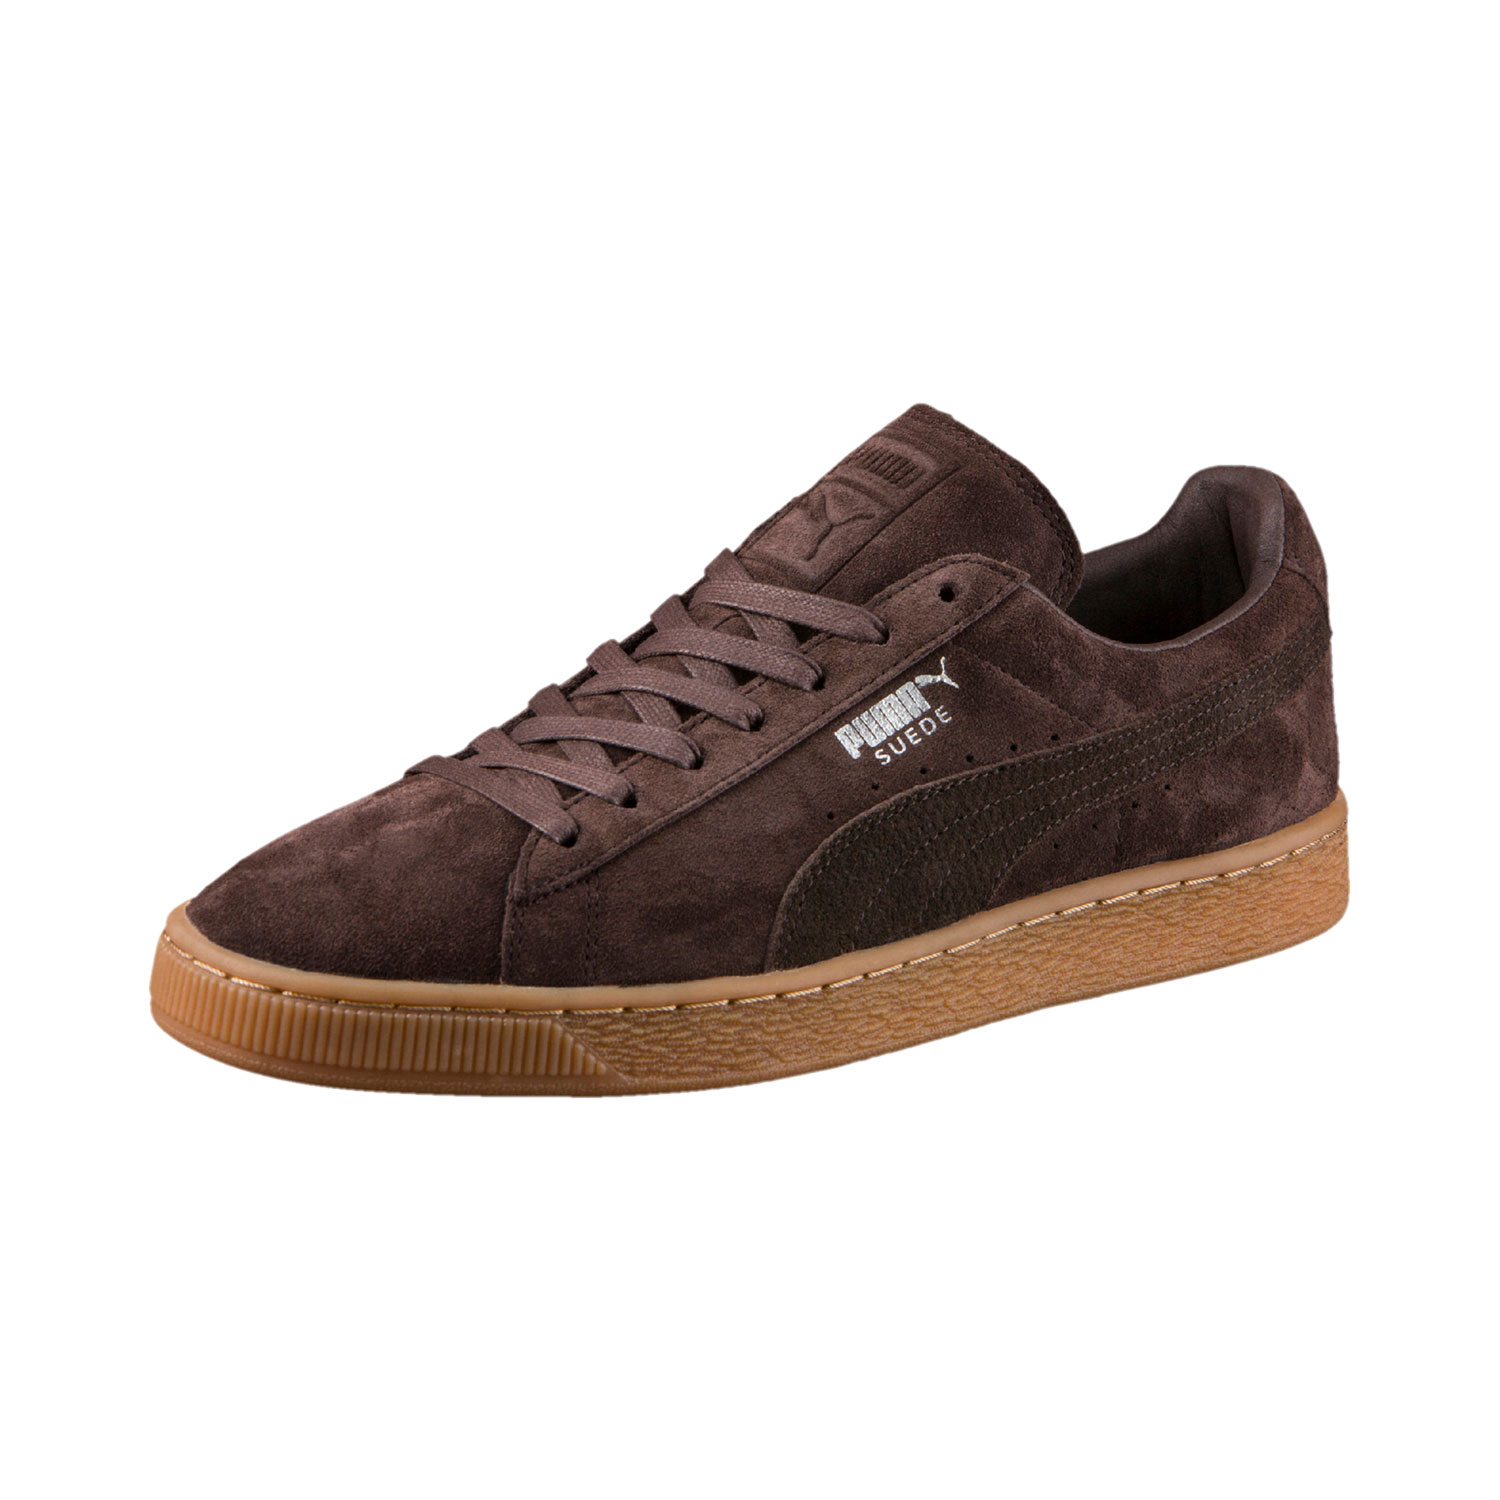 puma suede classic citi herren sneaker herren schuhe sneaker. Black Bedroom Furniture Sets. Home Design Ideas